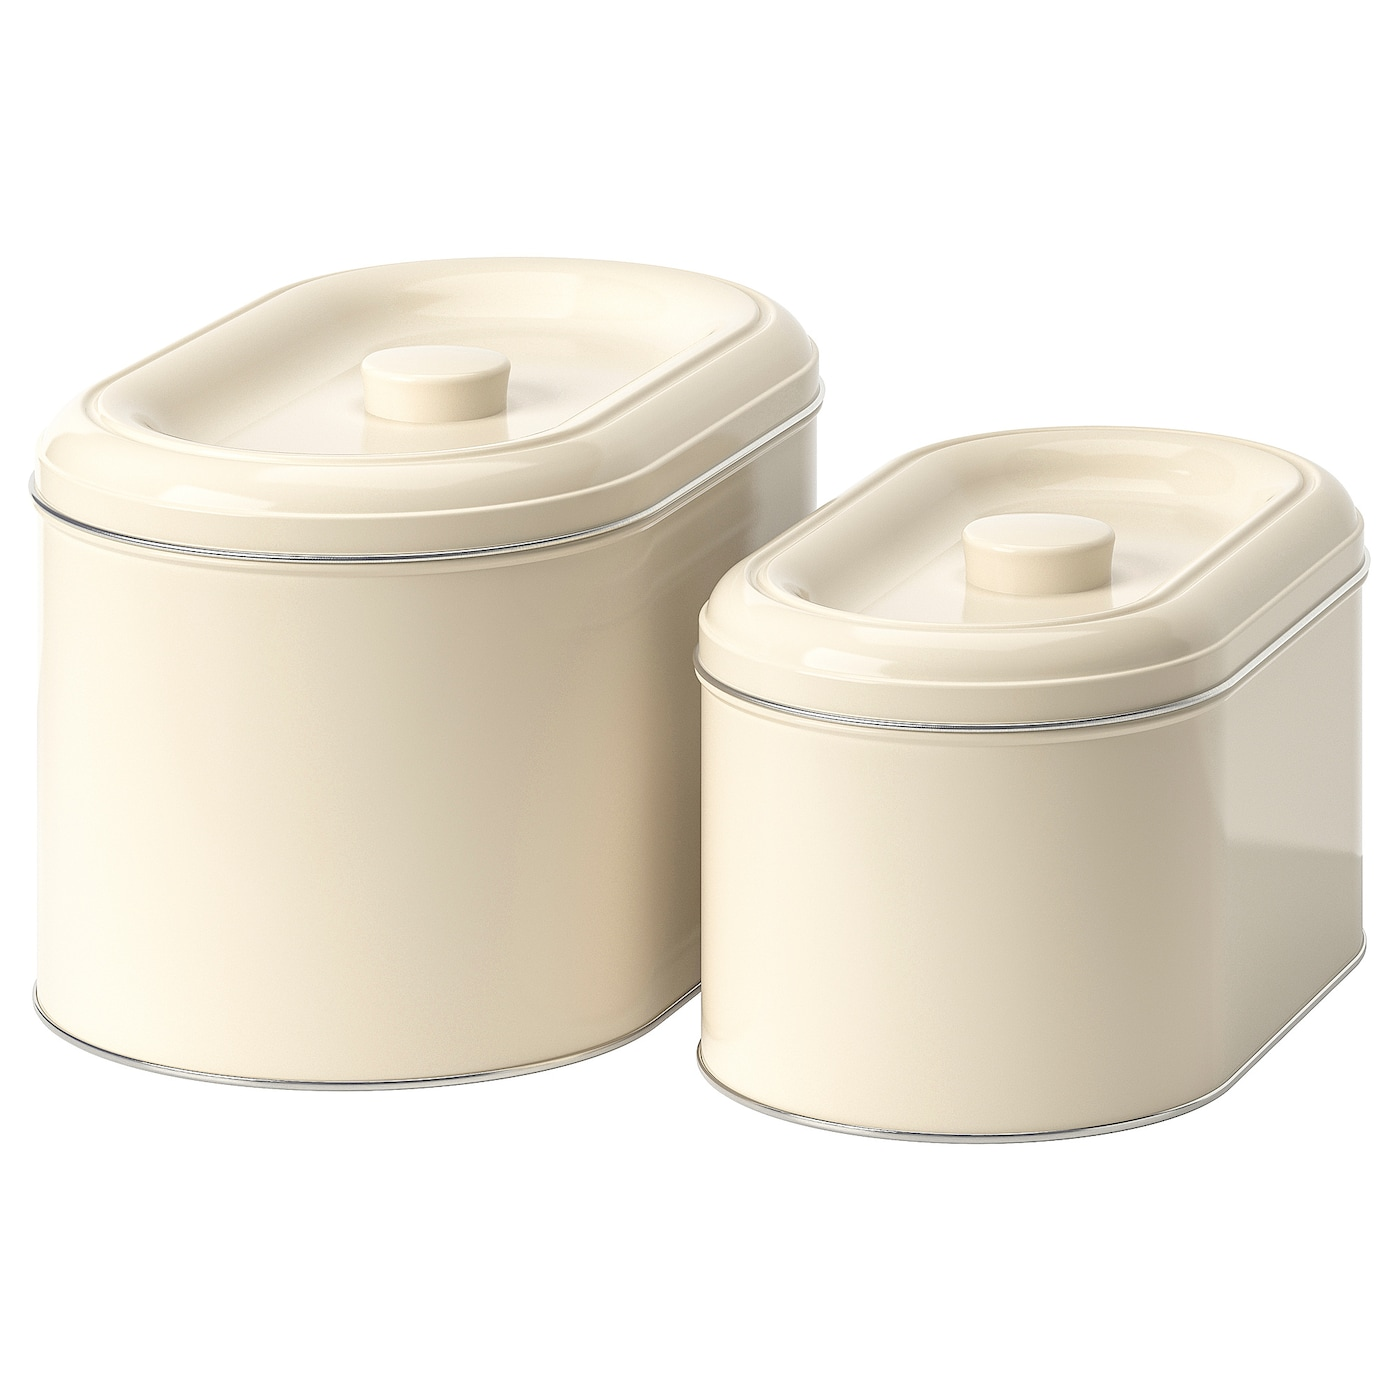 IKEA BERÖMLIG tin with lid set of 2 Suitable for cakes, biscuits and other dry foodstuffs.